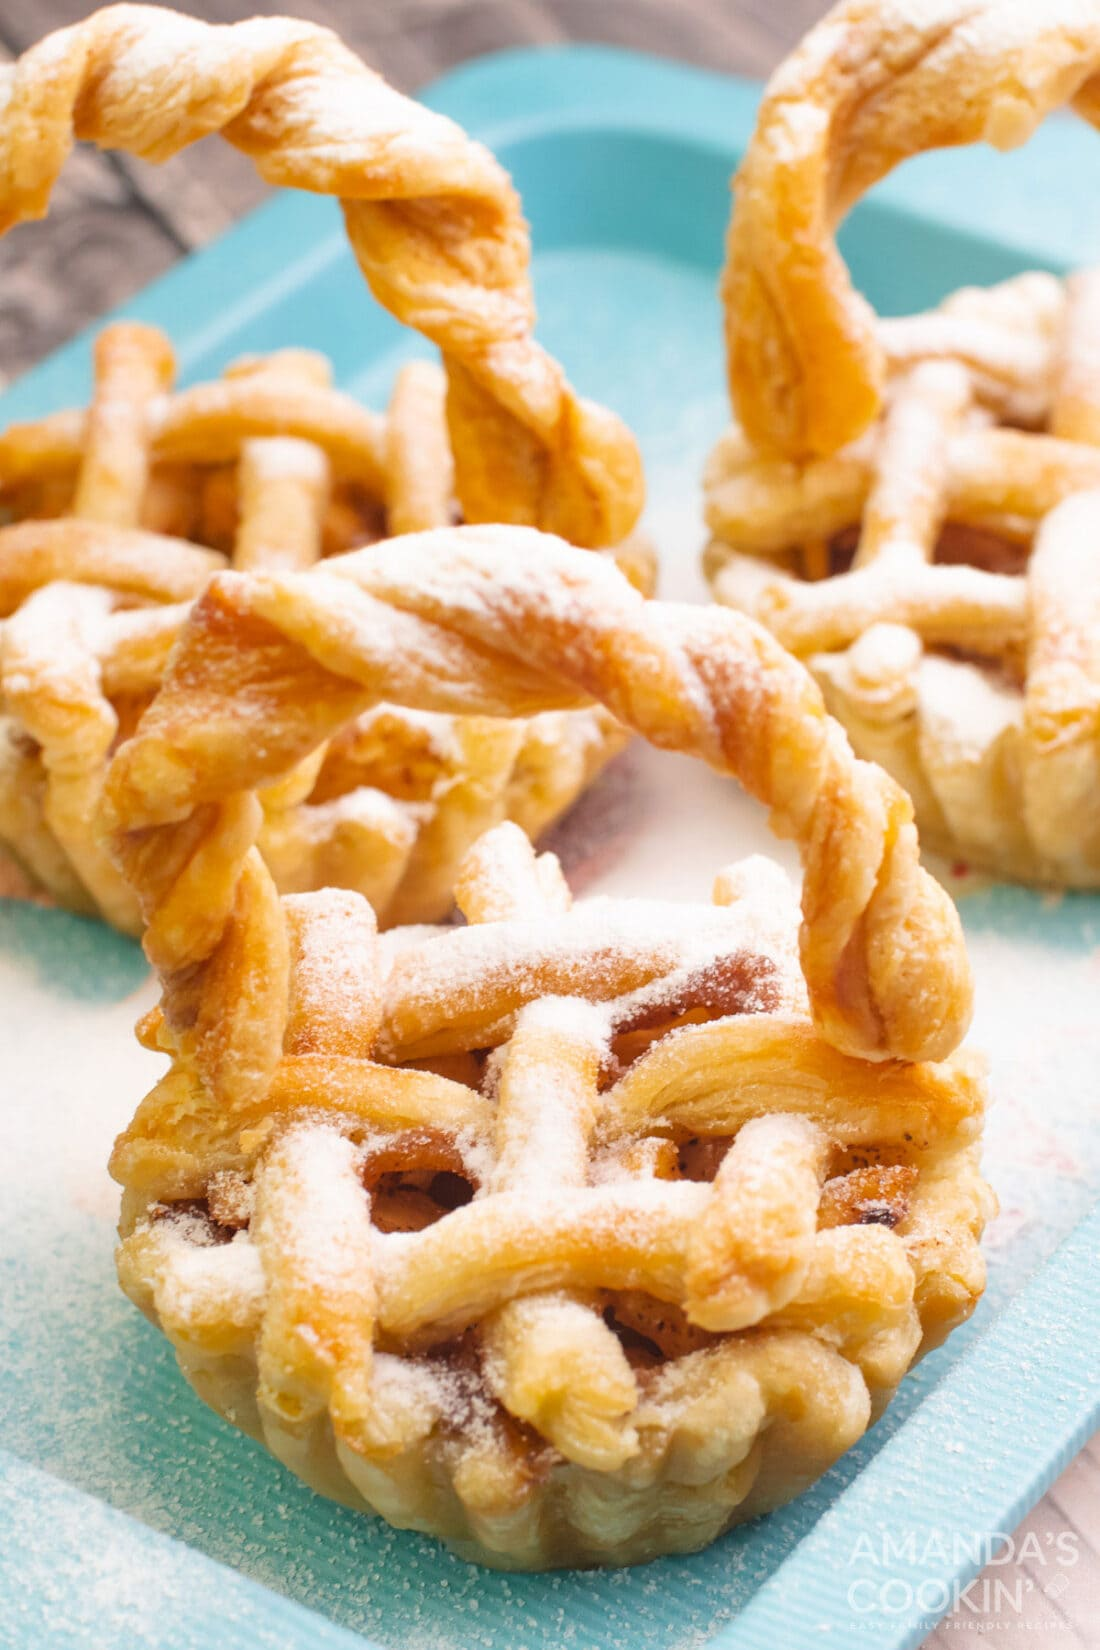 mini apple pies dusted with powdered sugar